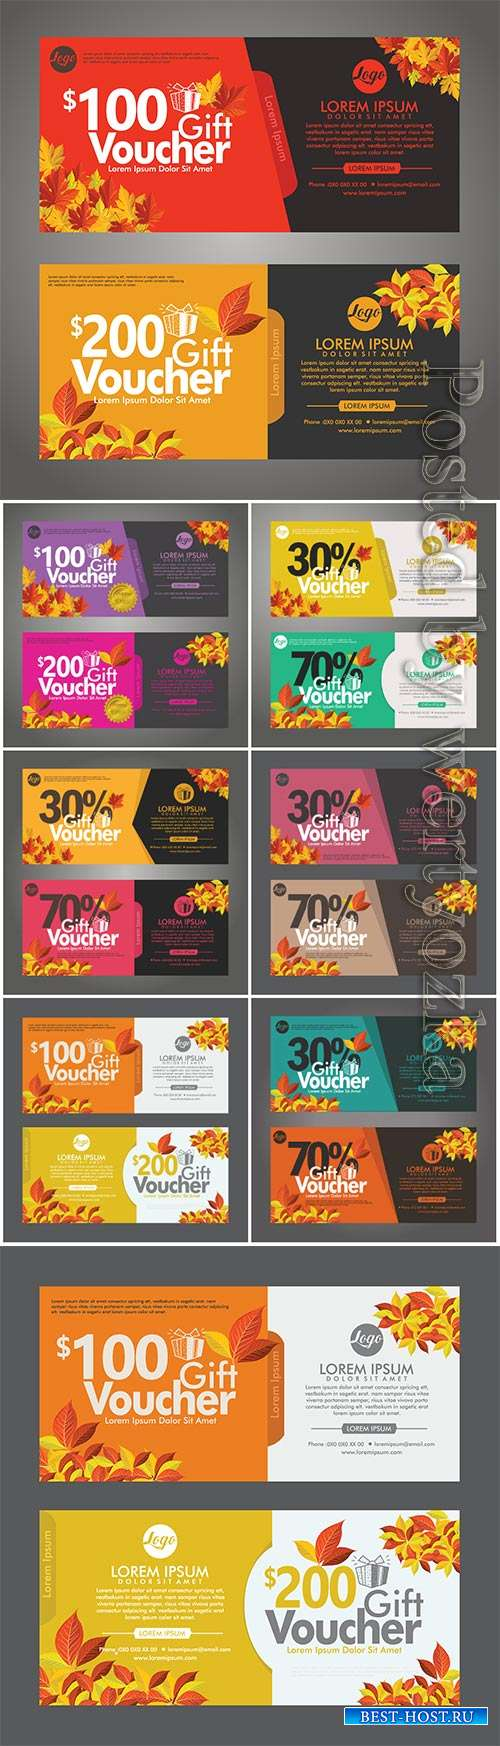 Autumn gift voucher discount cards vector template